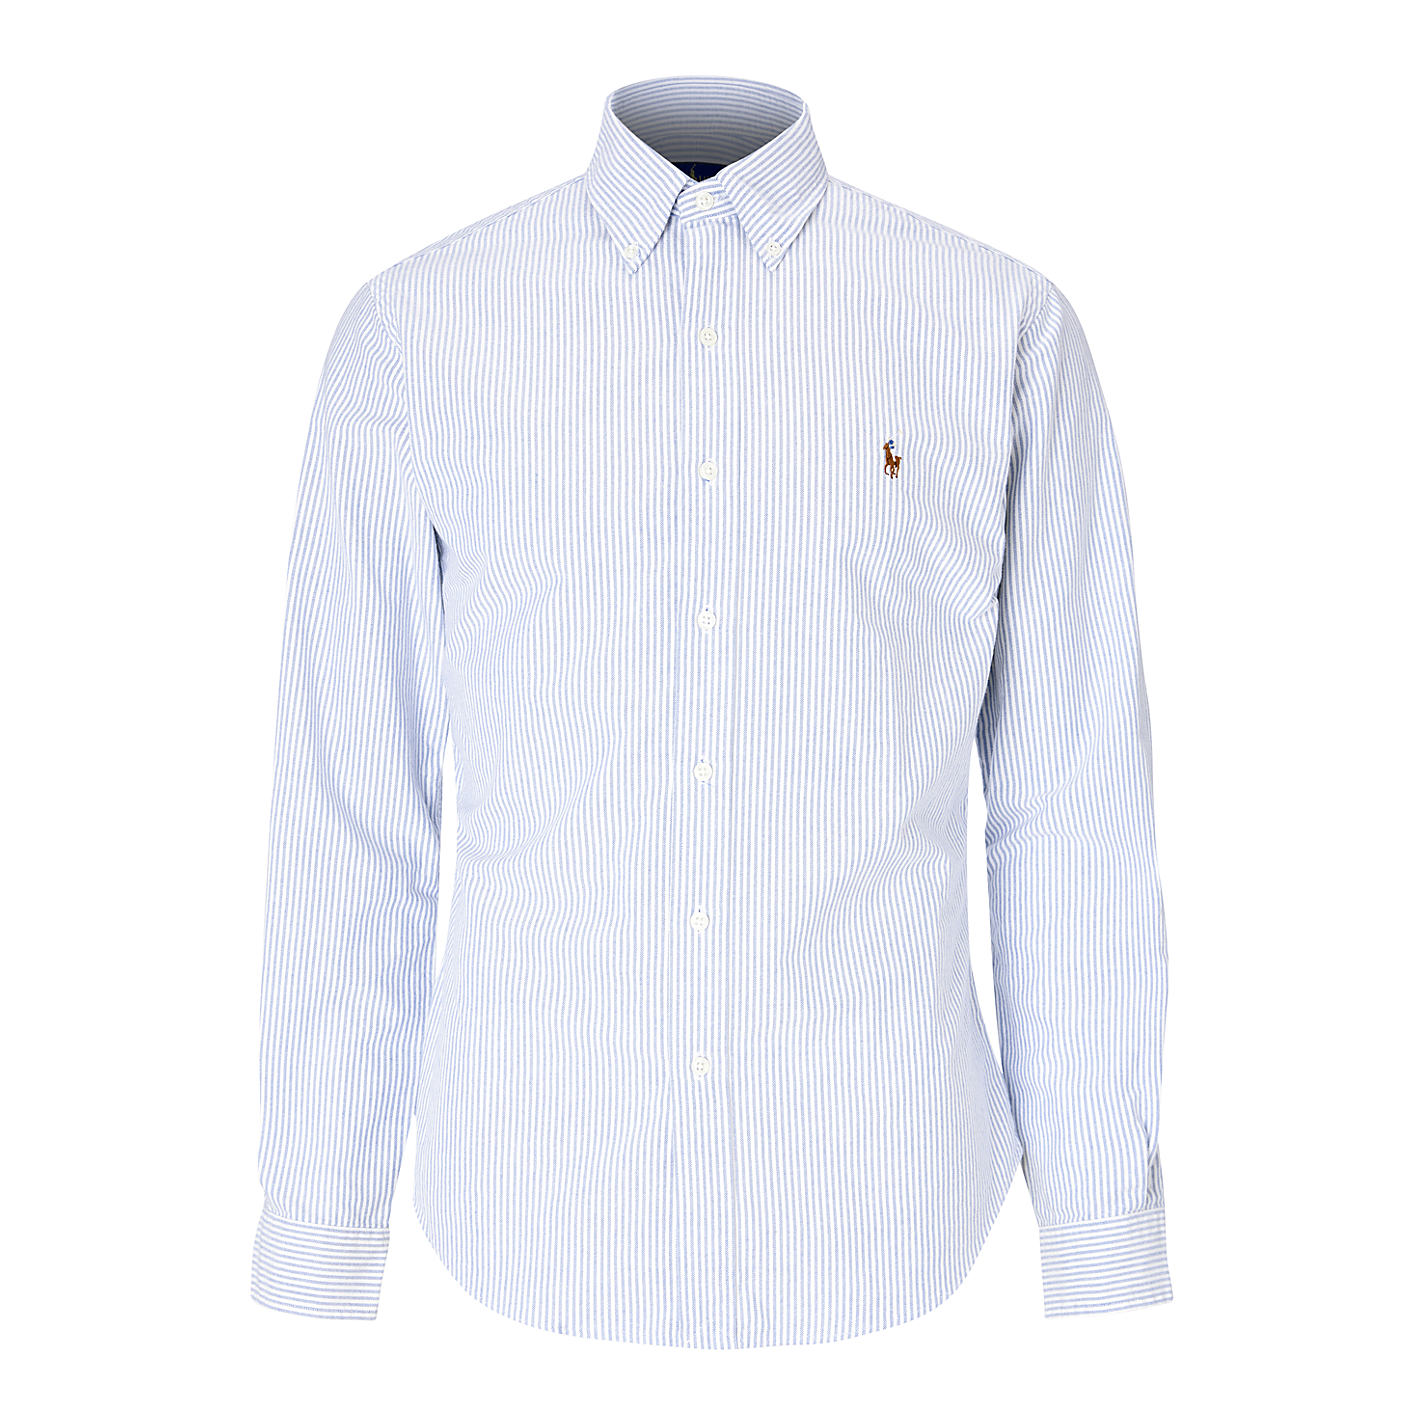 white ralph lauren polo shirt men with blue and red striped ralph ... 04d5aee5b82